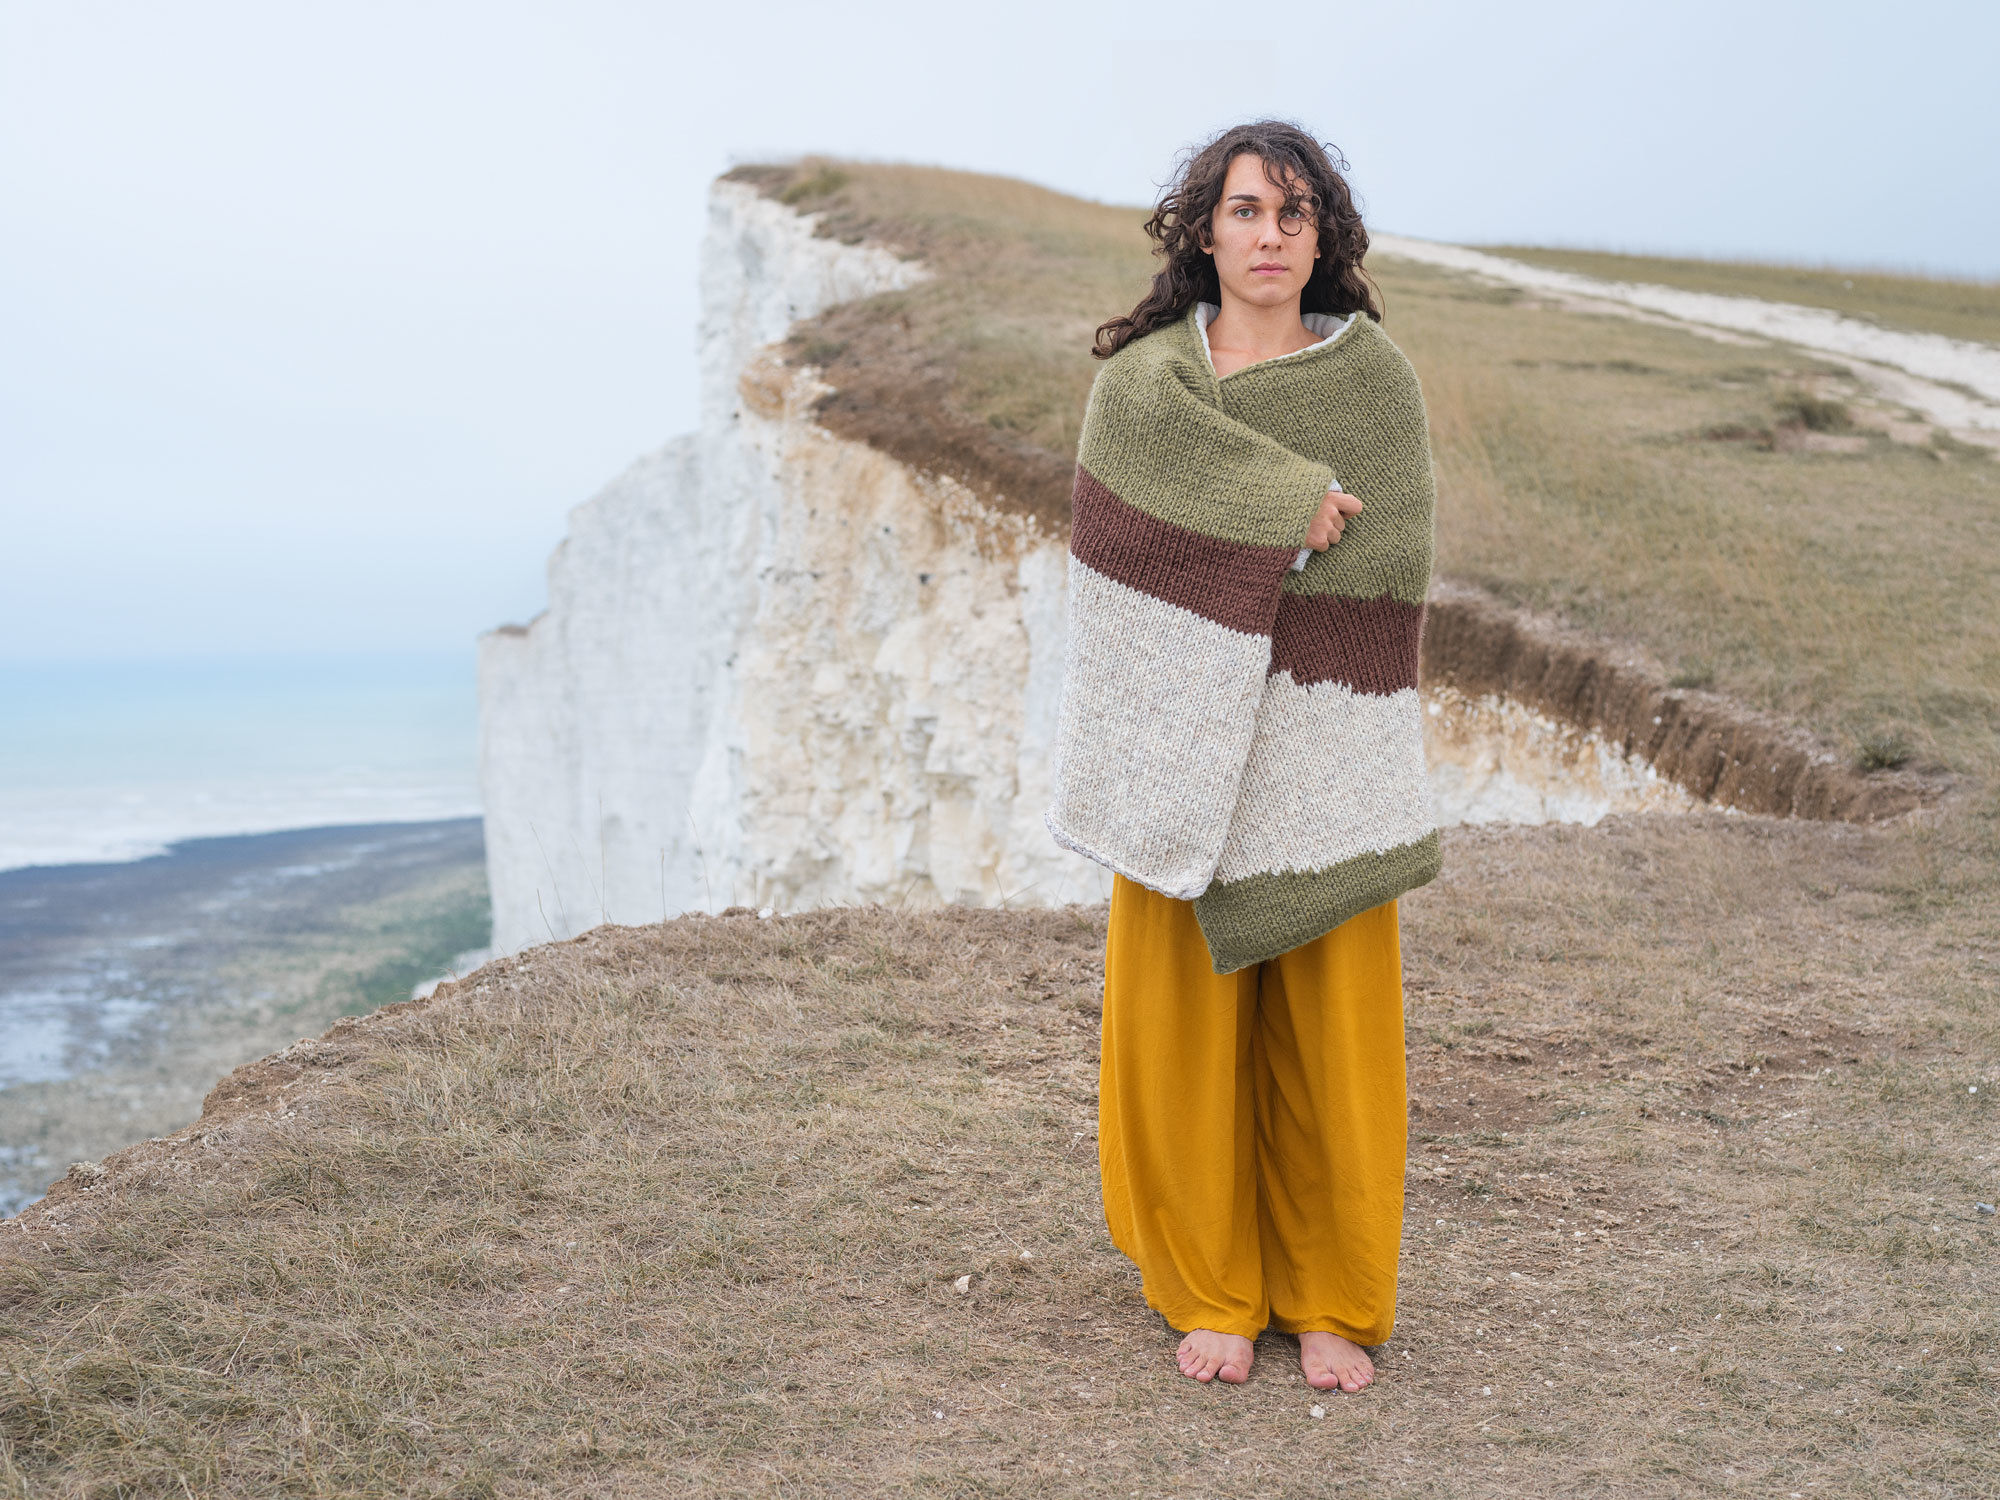 Lo, Beachy Head, 2018. Limited edition of 100 prints in the Knitted Camouflage series by Joseph Ford